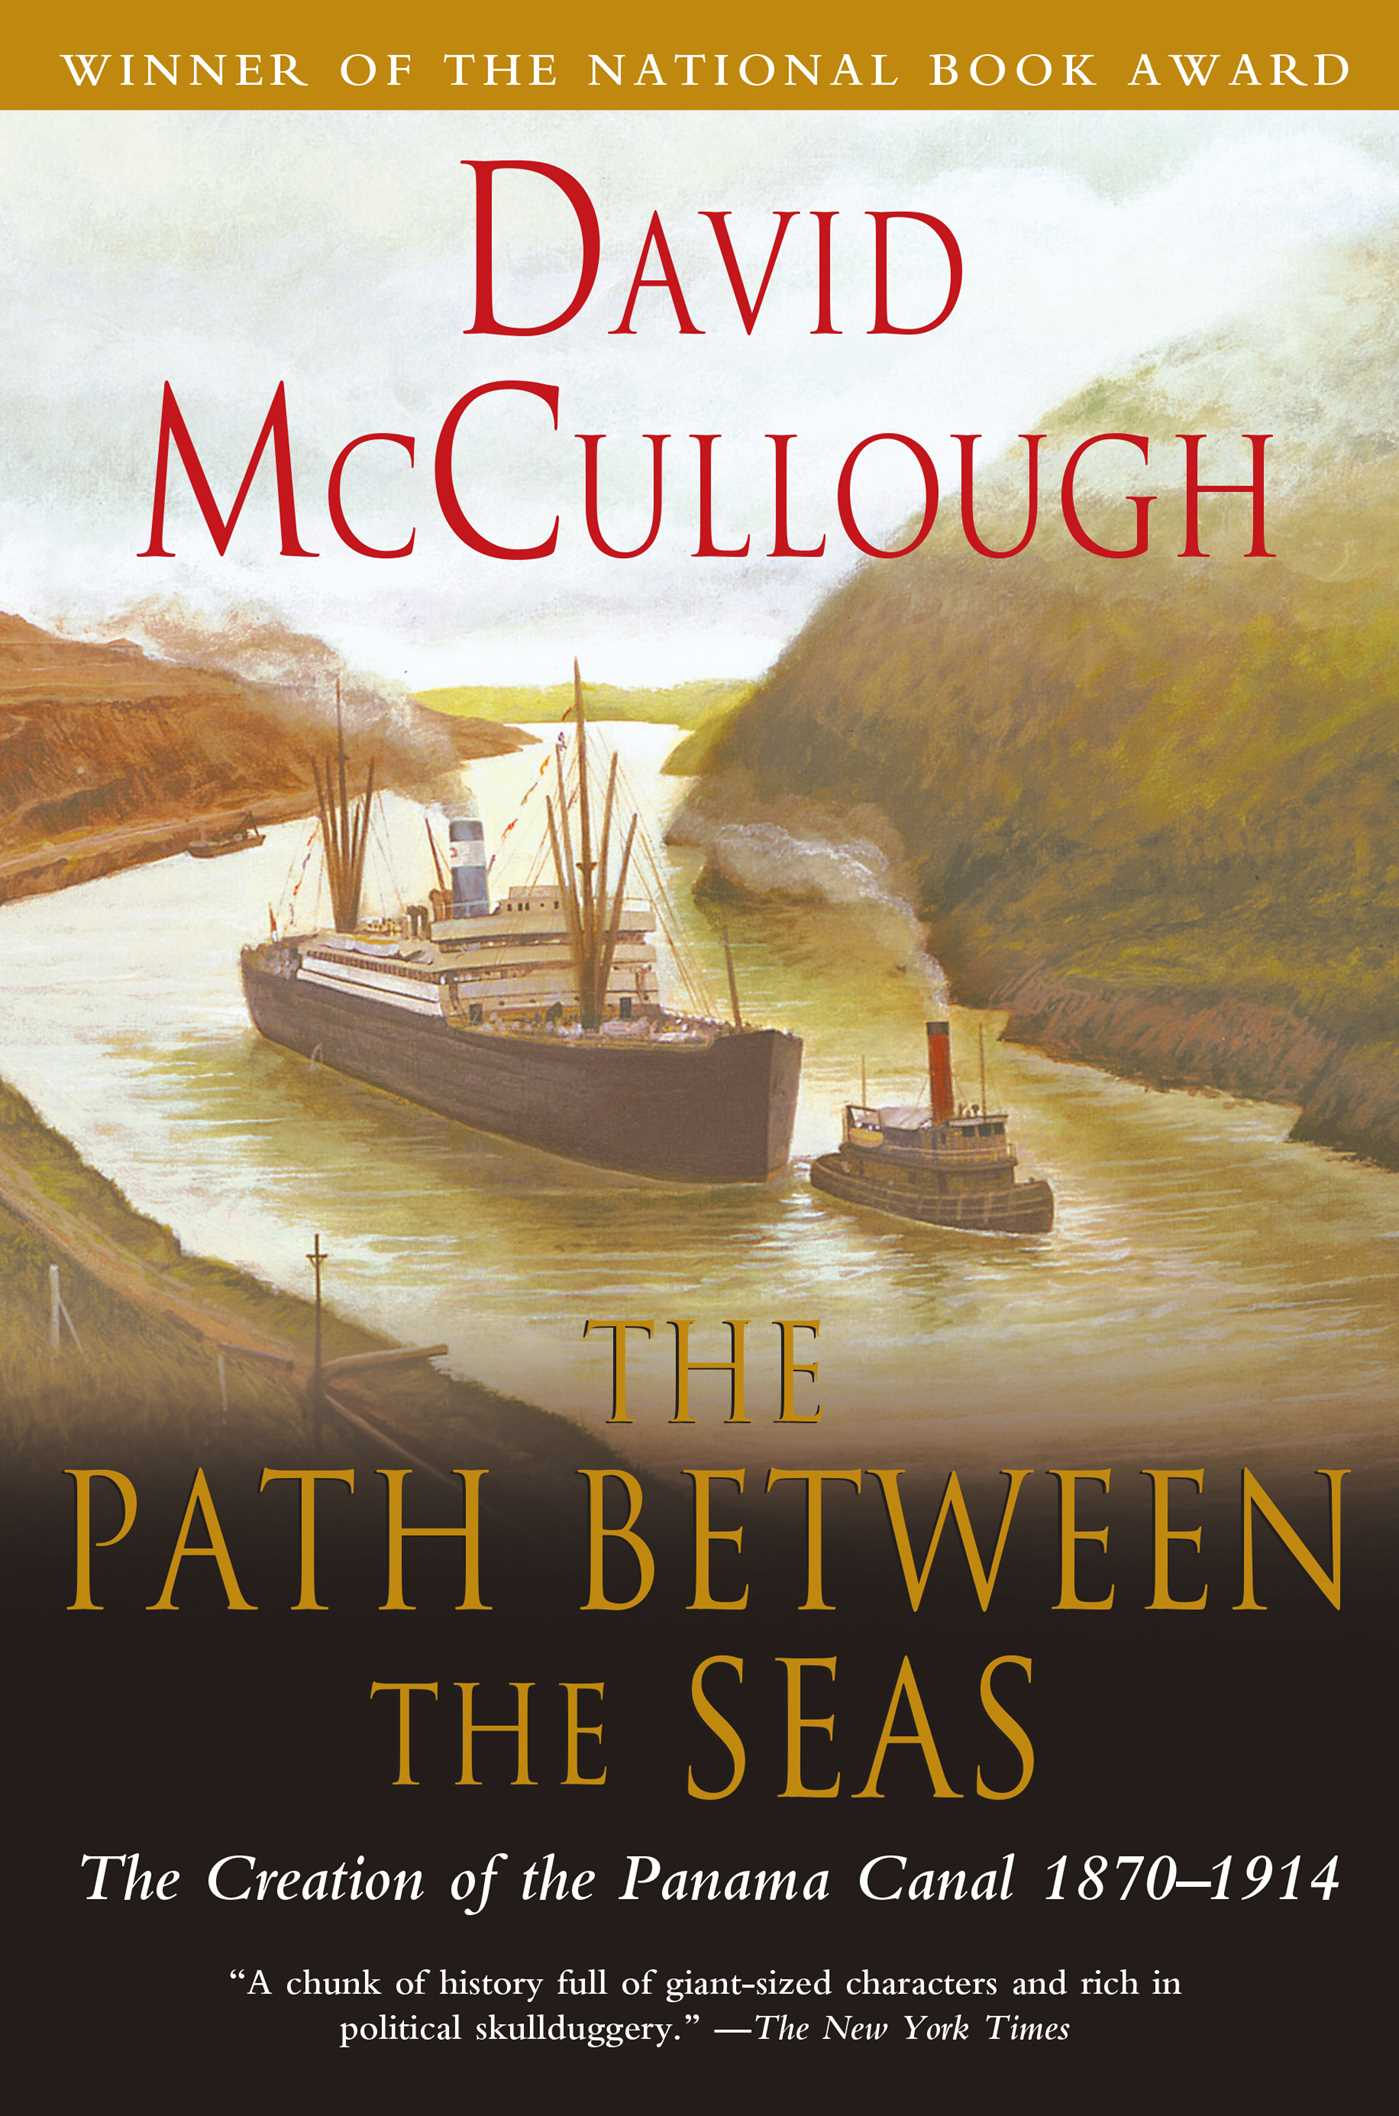 Book Cover Image (jpg): The Path Between the Seas